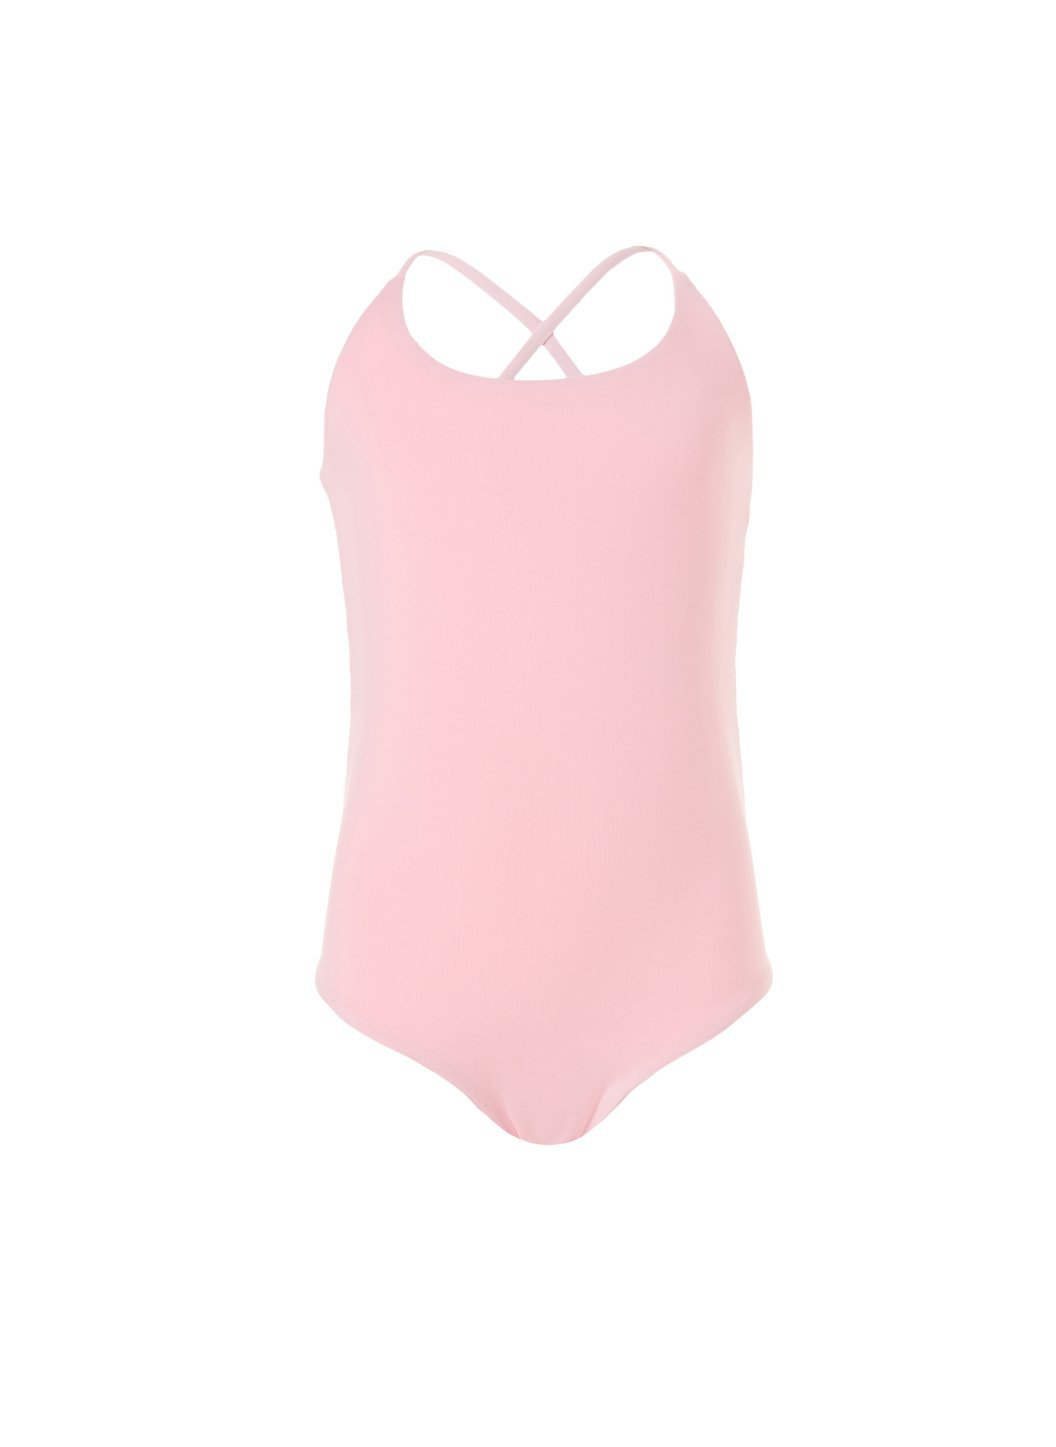 baby vicky pale pink neon cross back onepiece swimsuit 2019 2